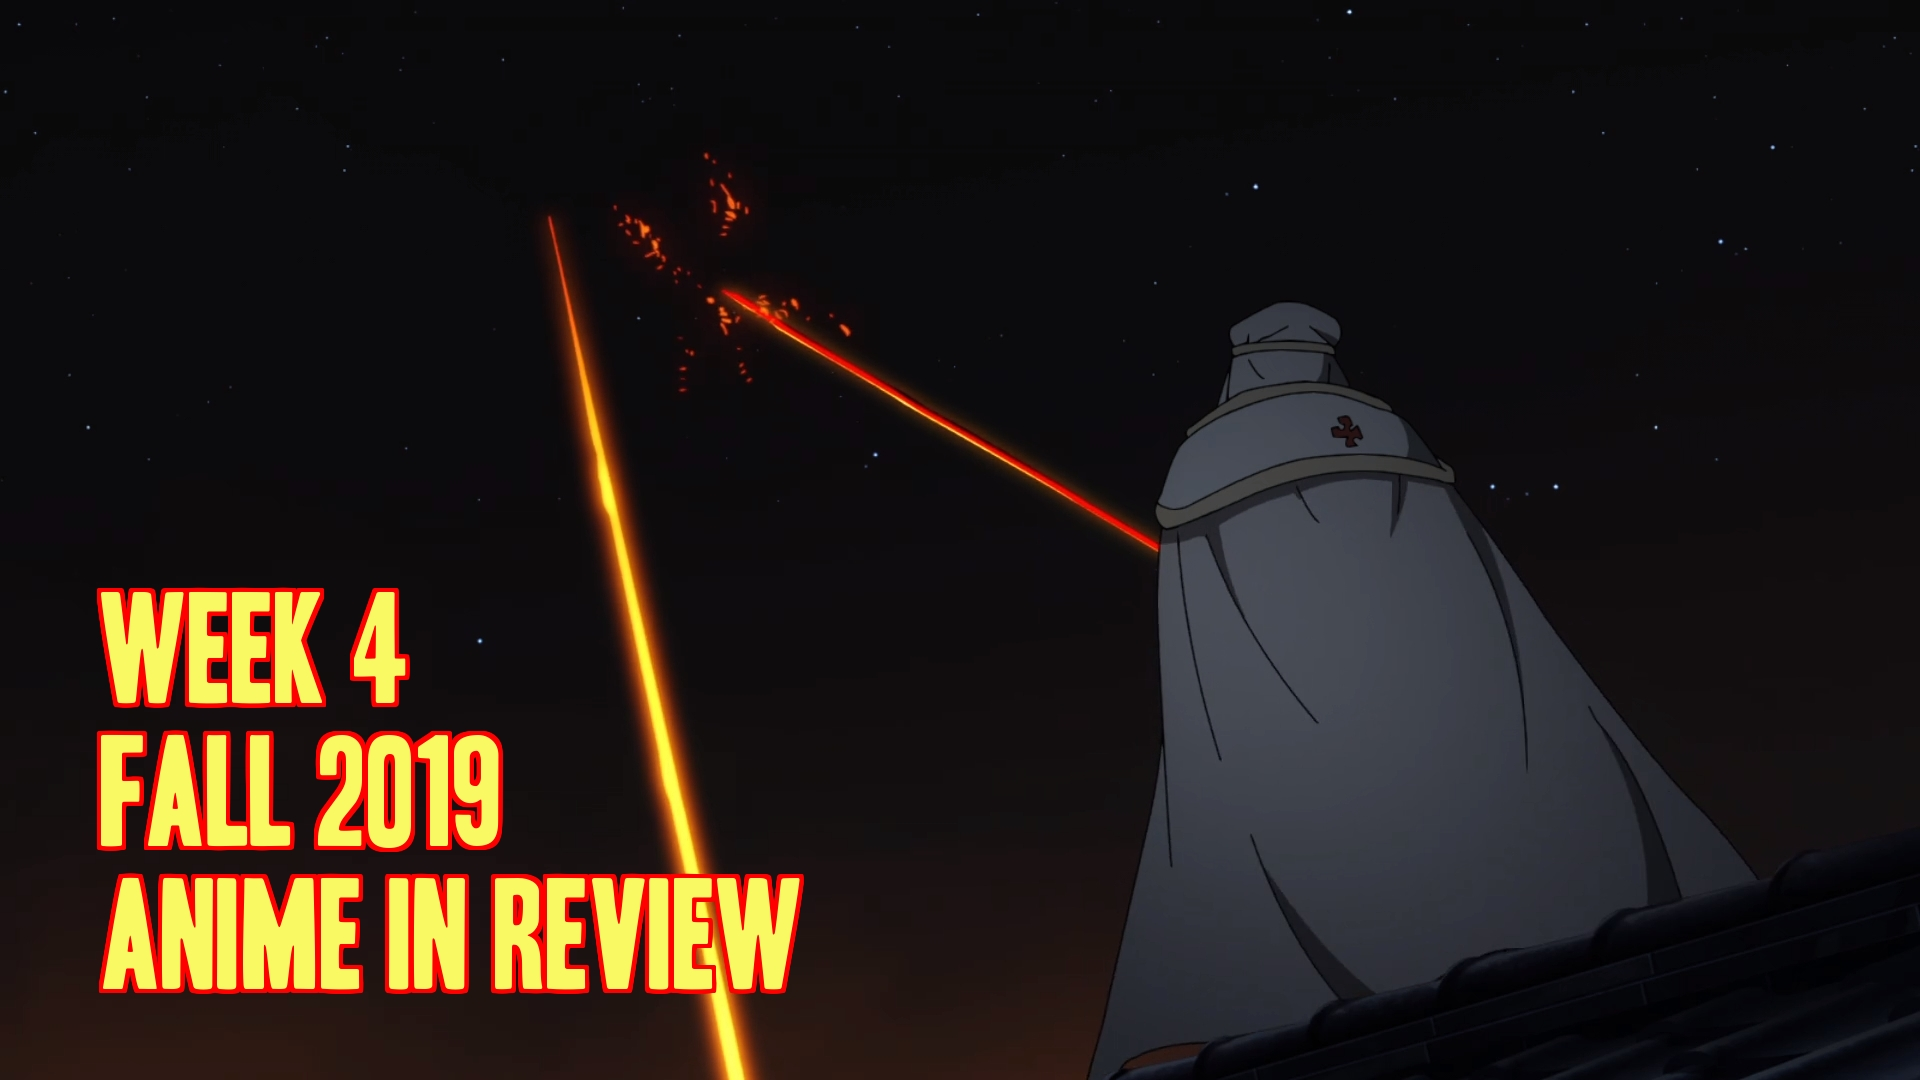 Week 4 of Fall 2019 Anime In Review